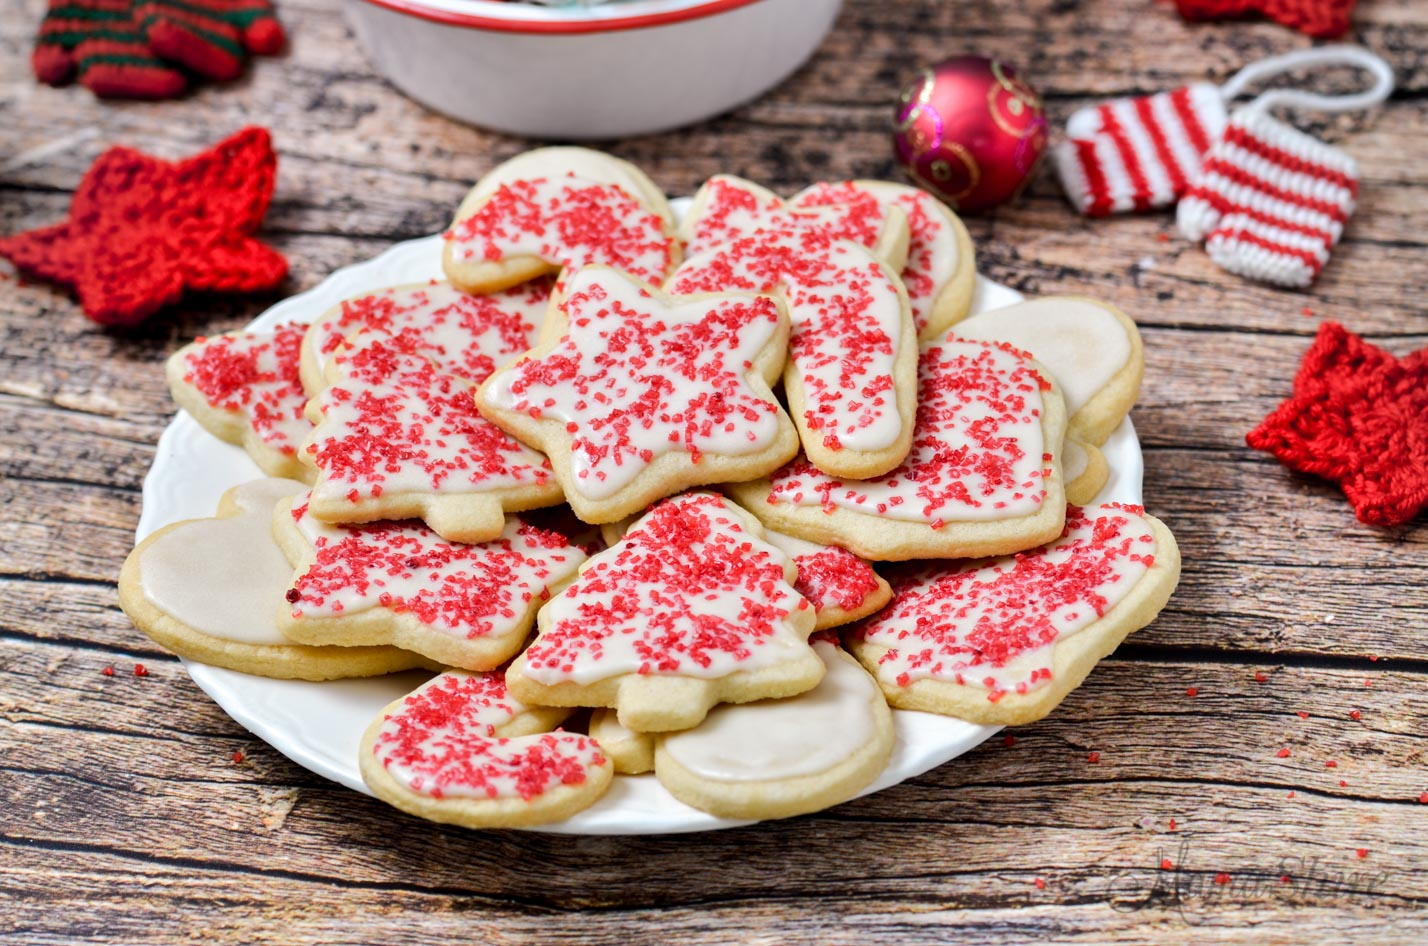 A plate of gluten-free Christmas cookies